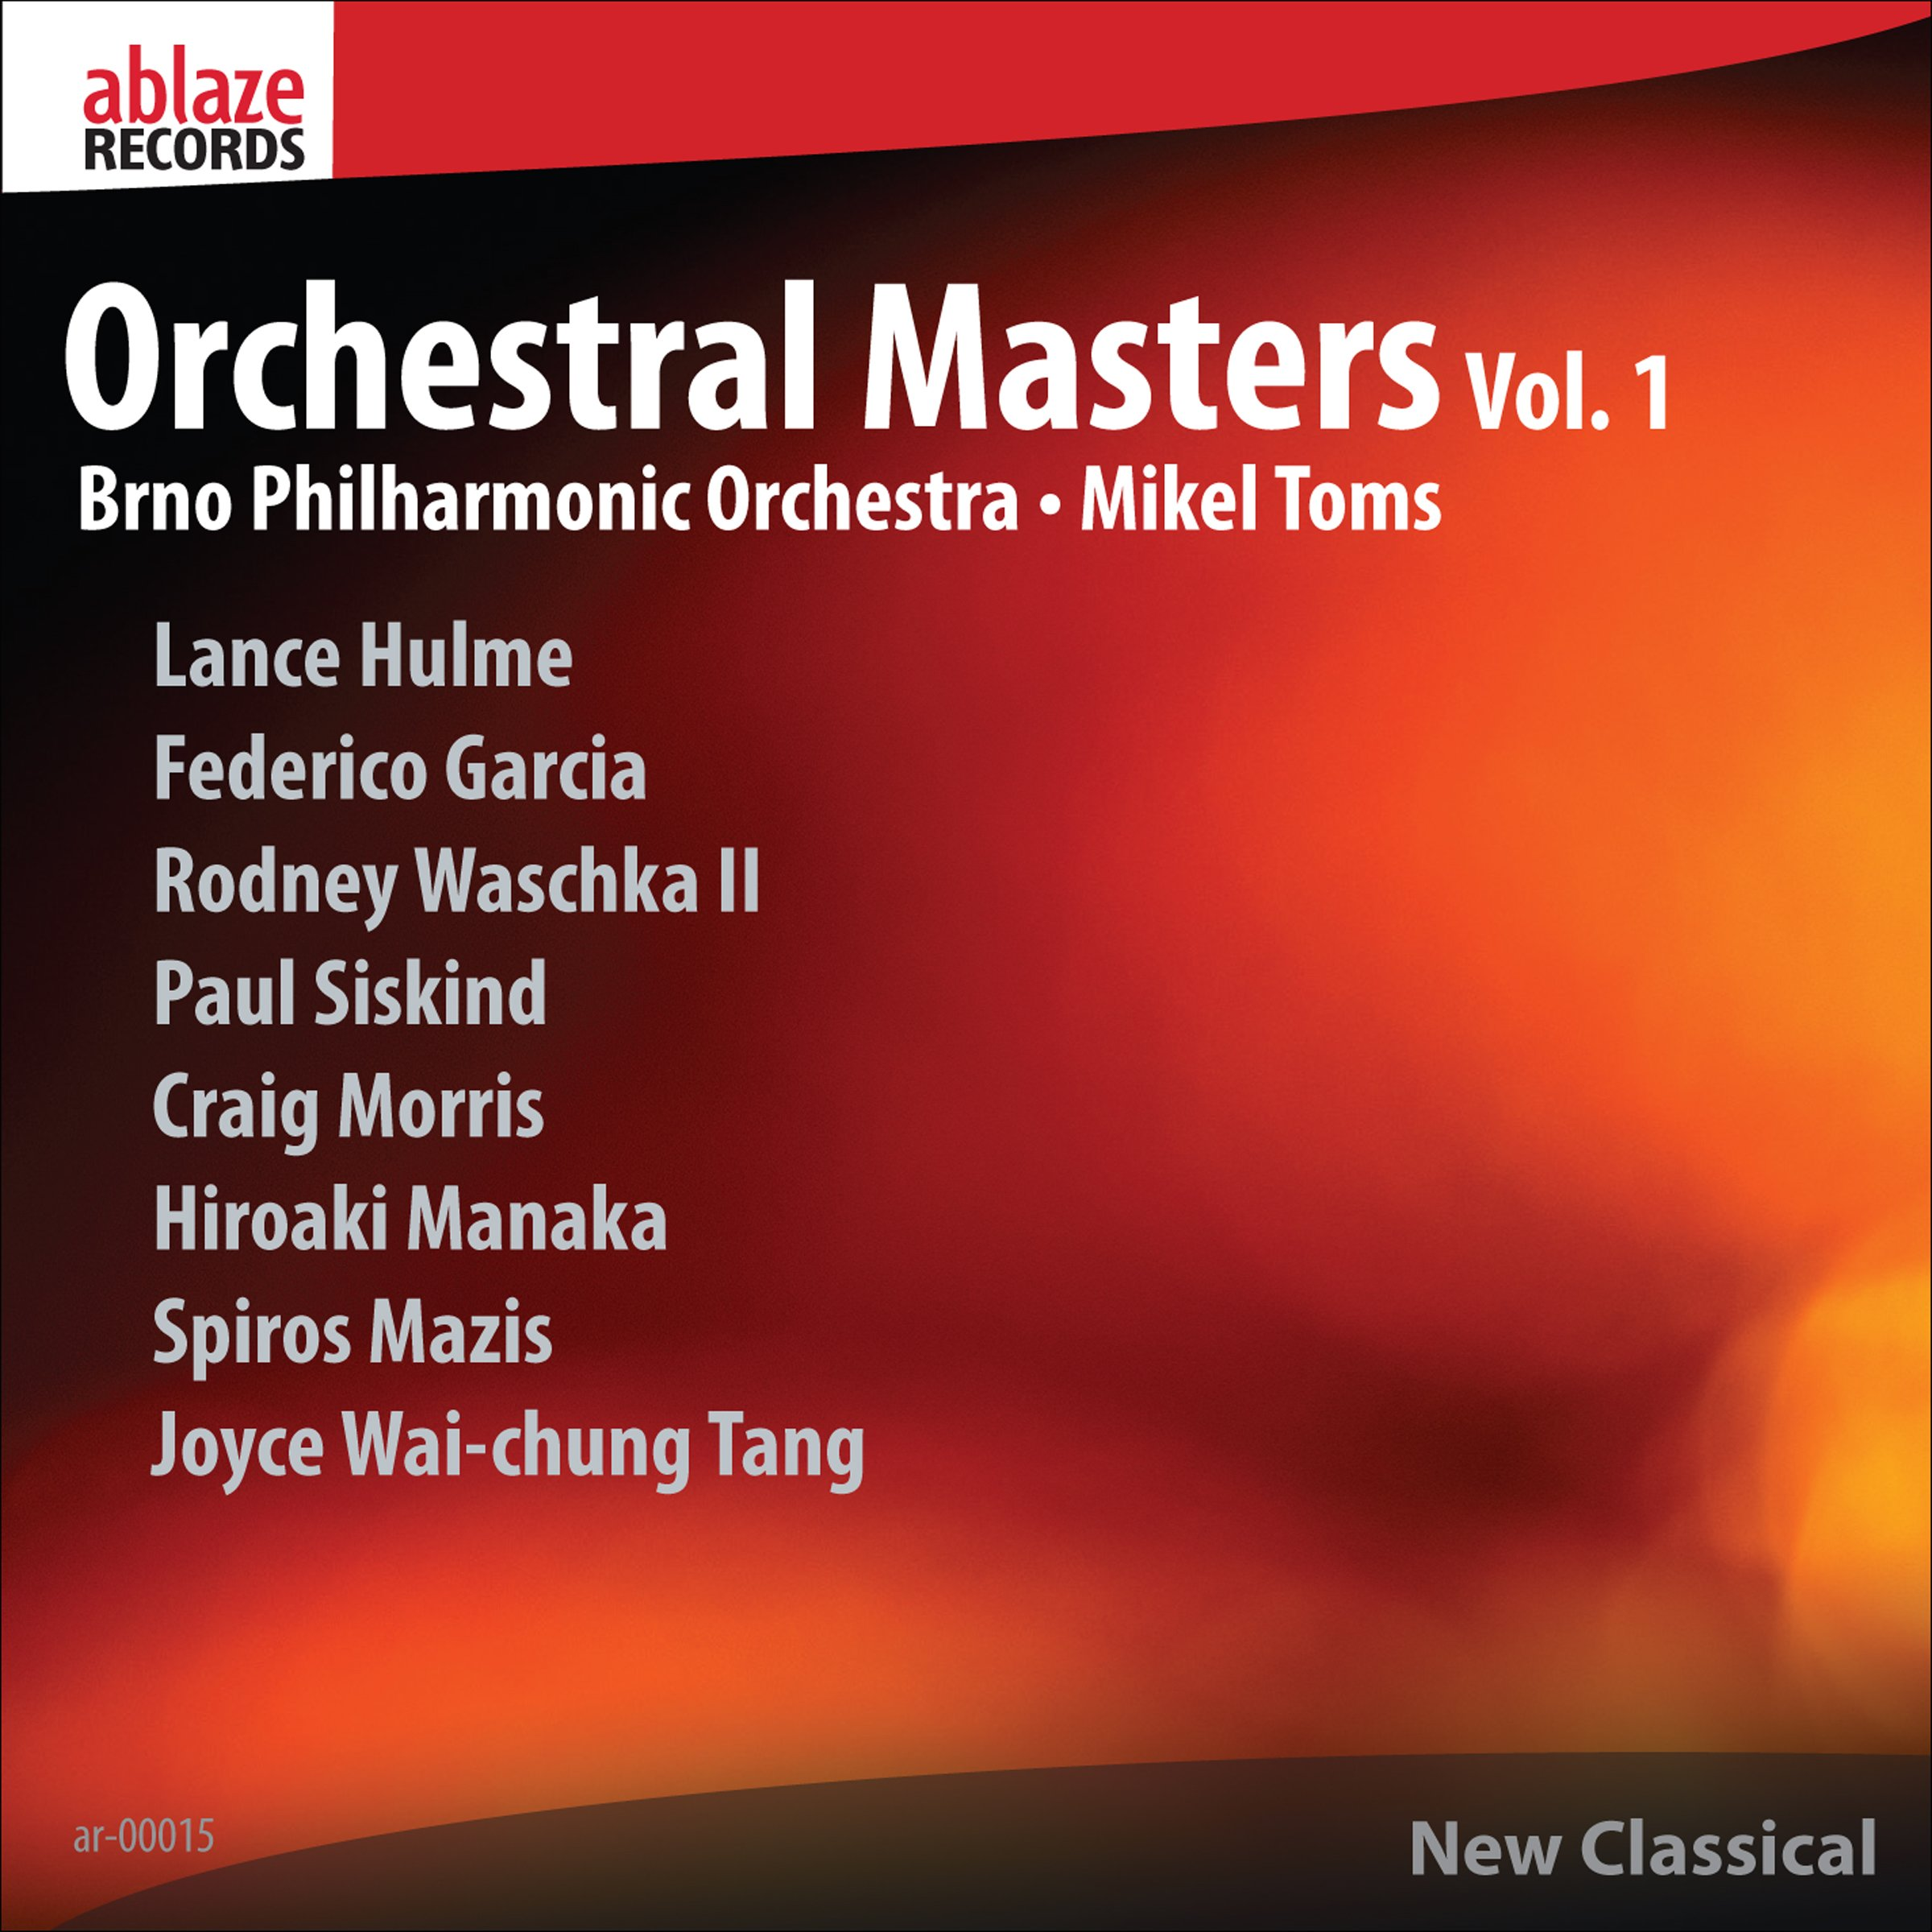 Orchestral Masters, Vol. 1 by CD Baby